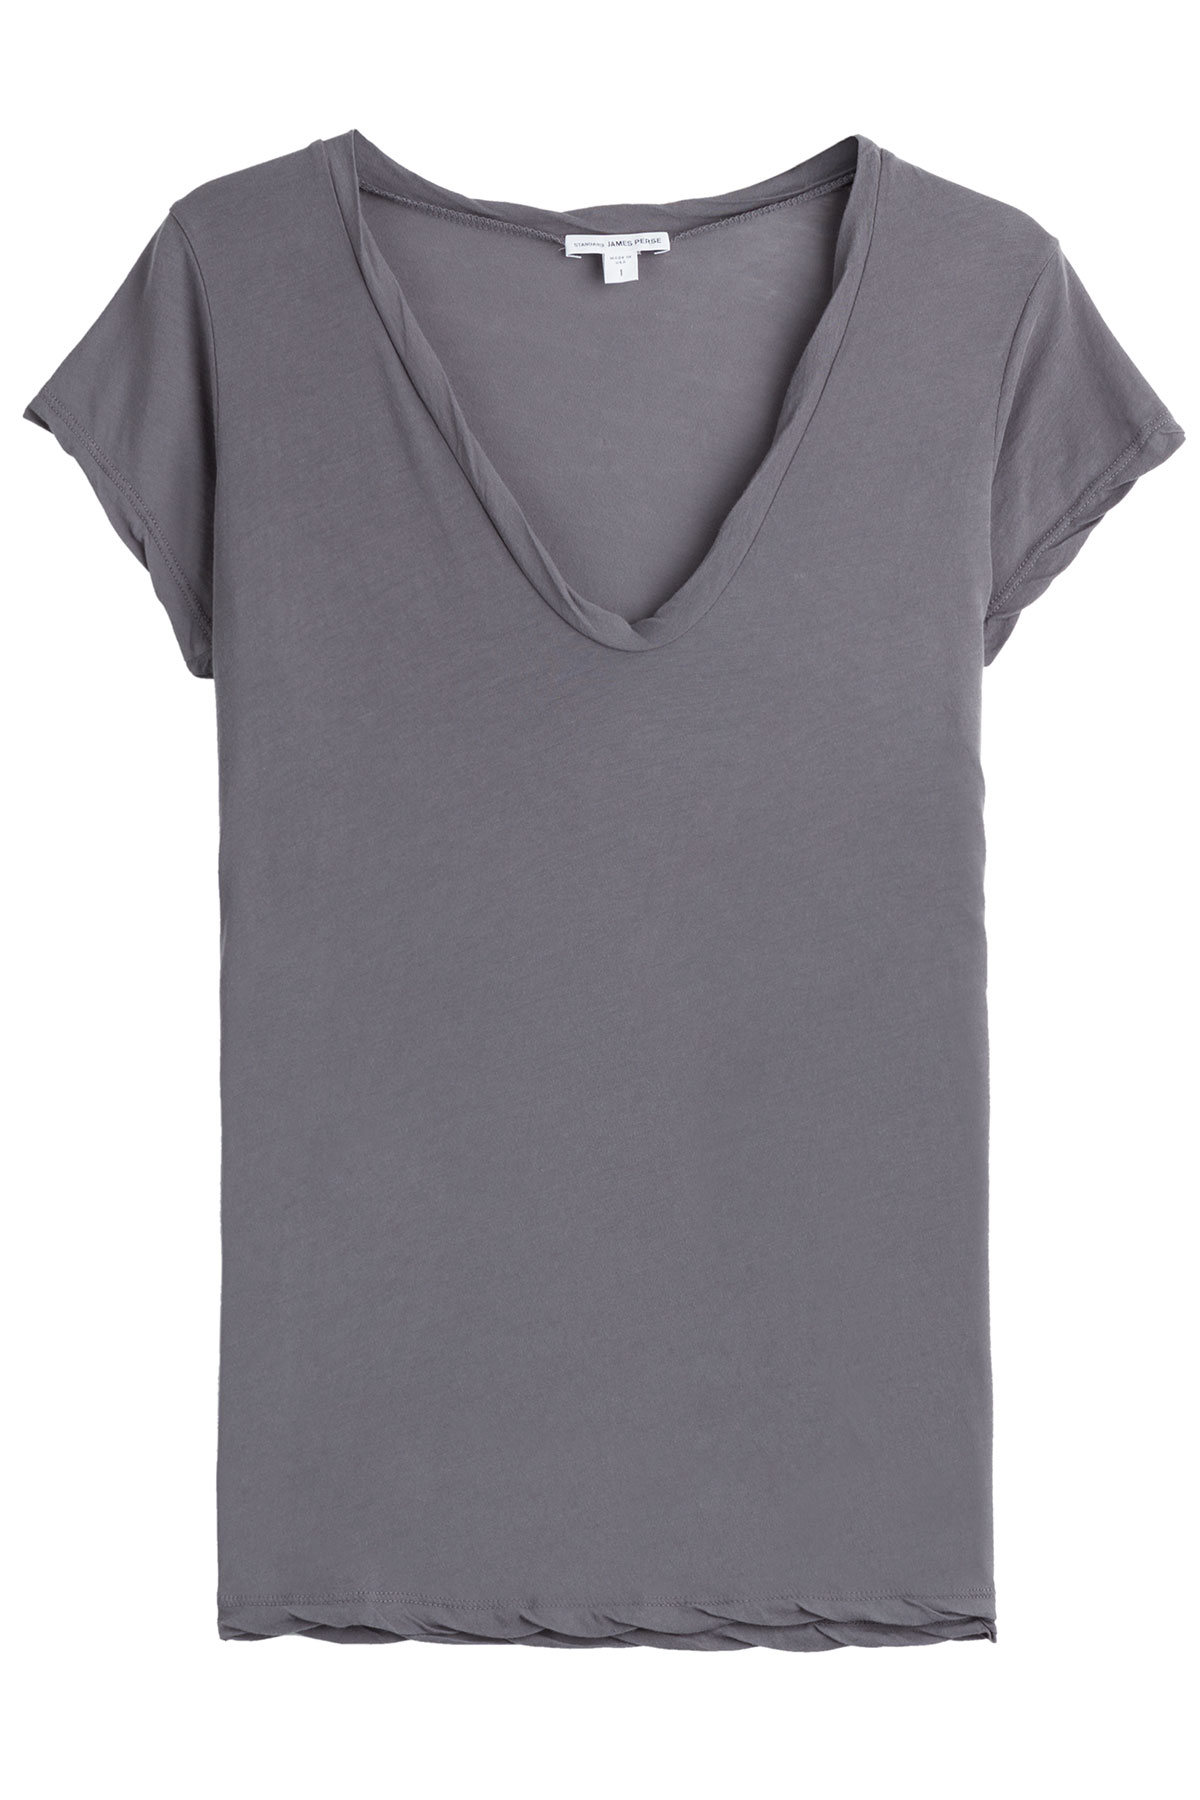 james perse cotton t shirt in gray lyst